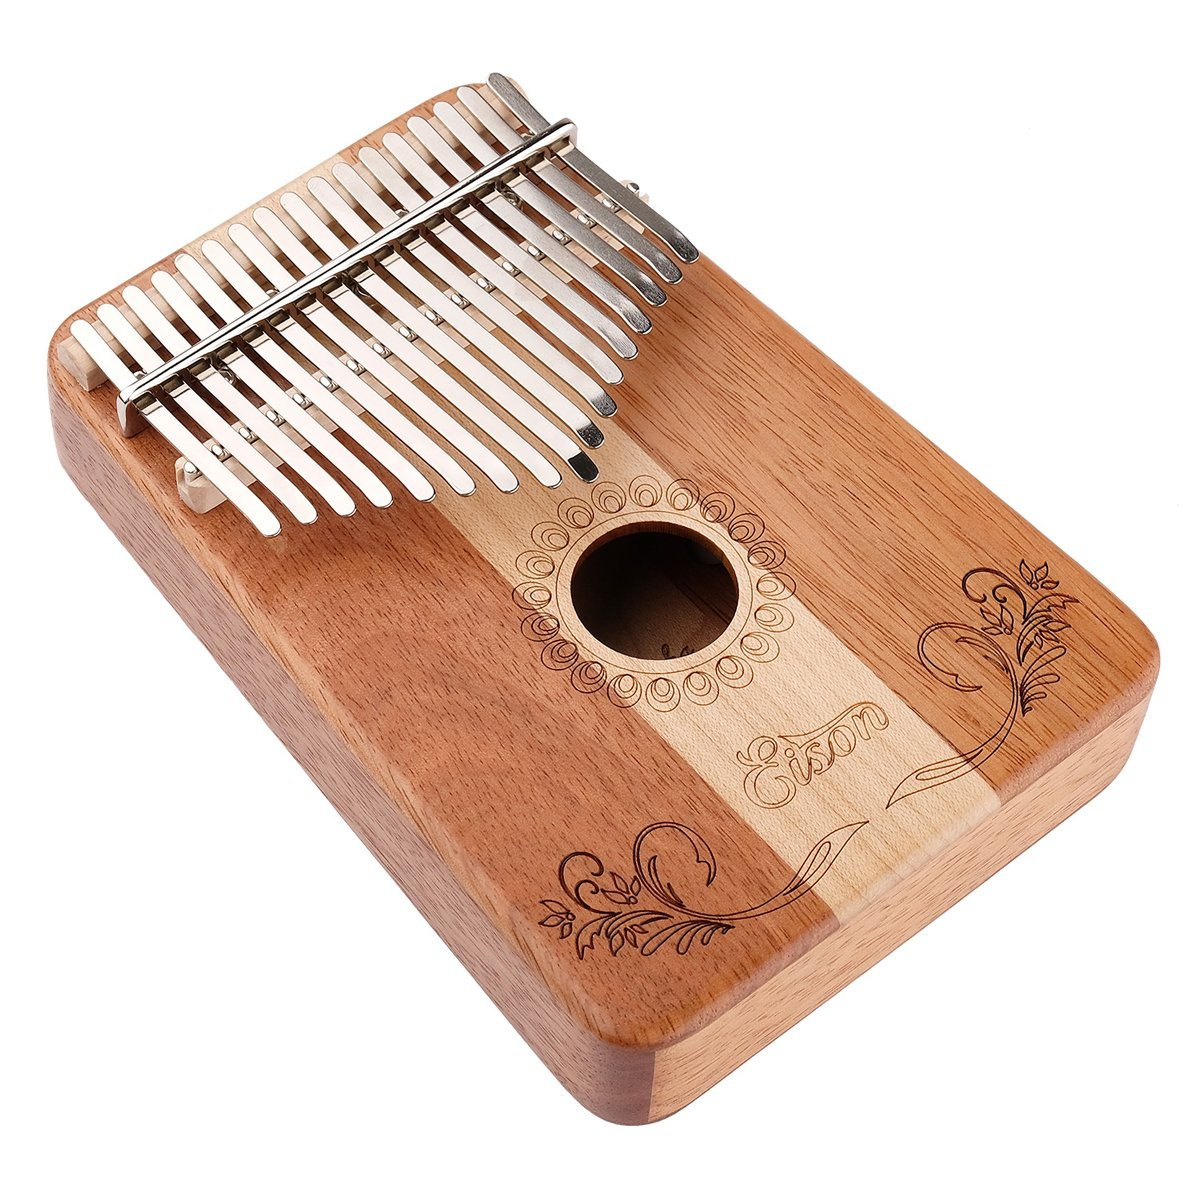 Kalimba,Eison Kalimba Thumb Piano Finger Piano 17 keys with Key Locking System with Instruction and Tune Hammer, Solid Wood Mahogany & Maple Body- Best Gift for Music Fans Kids Adults,E-17 by Eison (Image #5)